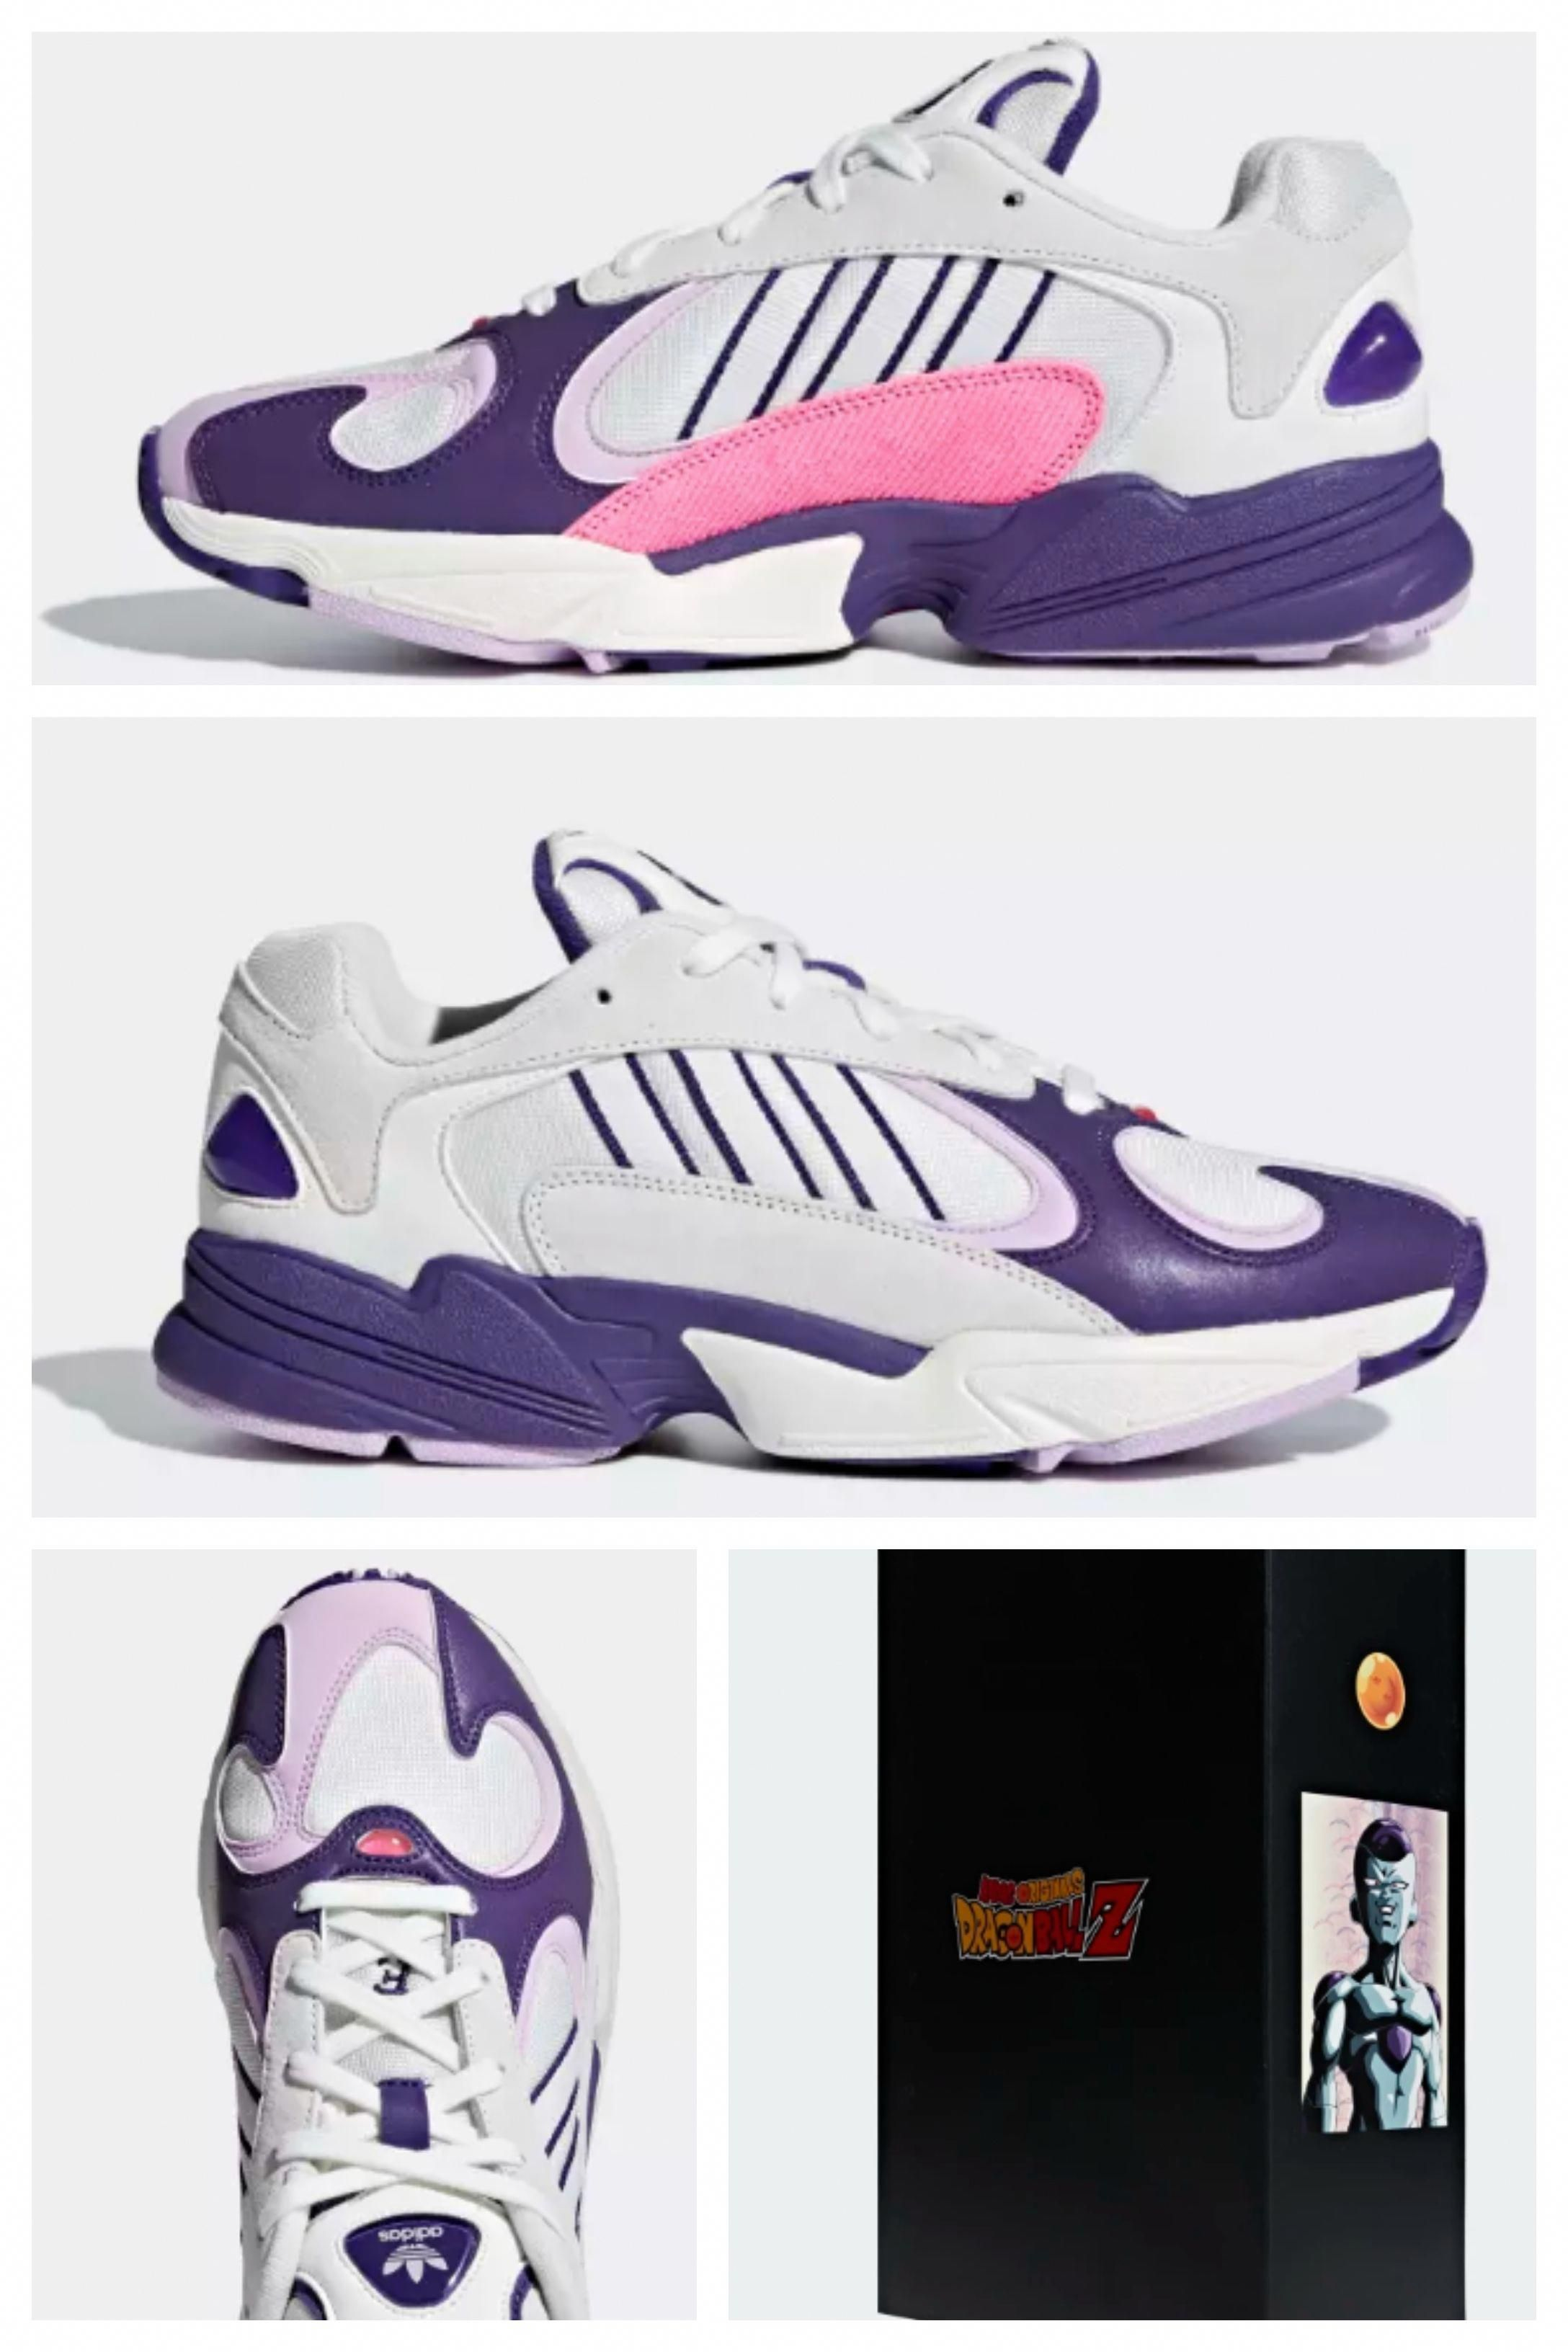 Frieza Adidas YUNG 1 SHOES | Sneakers men, Adidas casual, Shoes